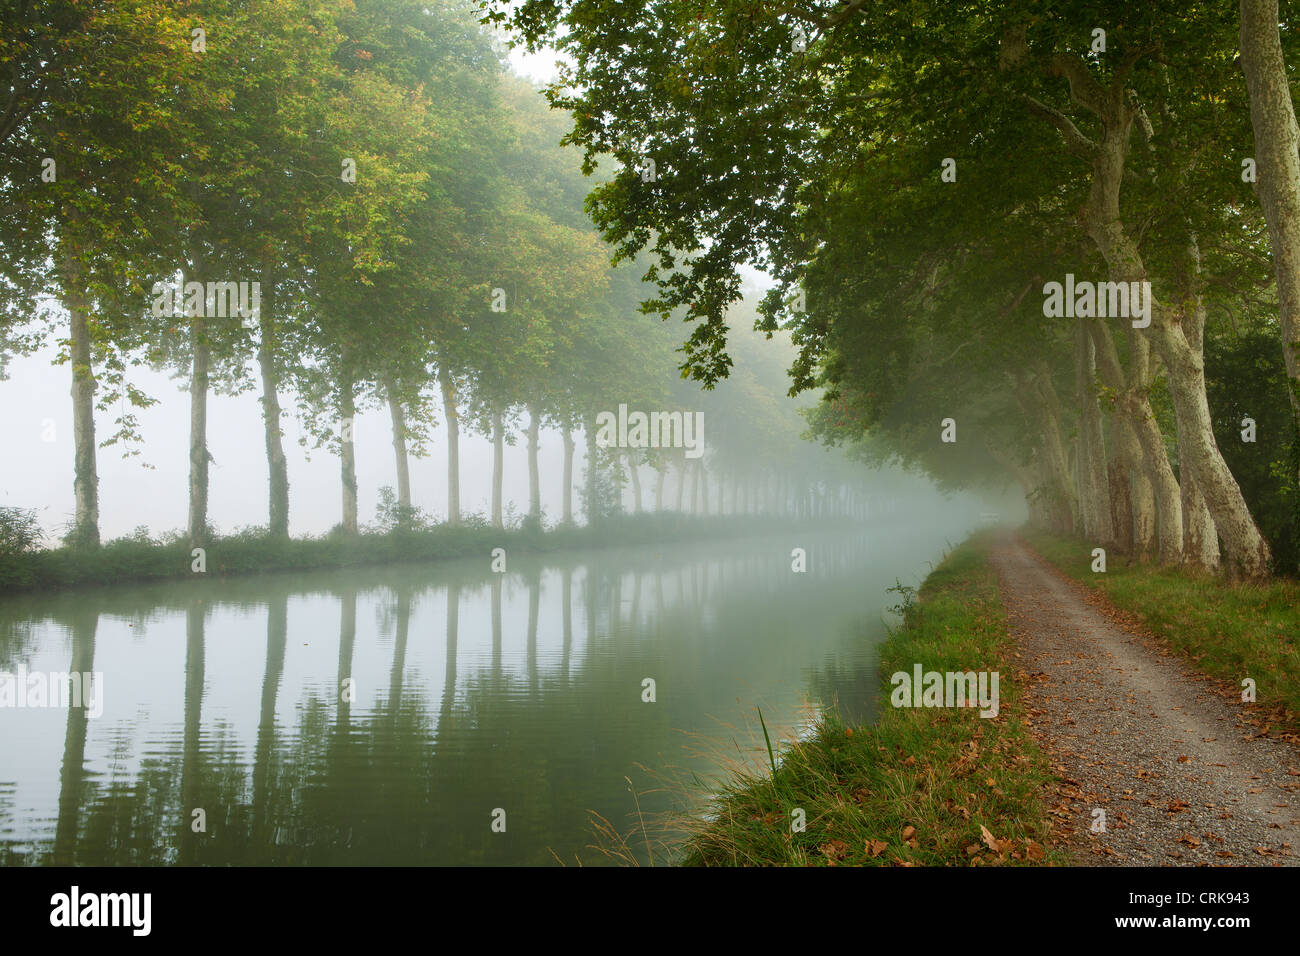 the Canal du Midi, nr Castelnaudary, Languedoc-Rousillon, France - Stock Image